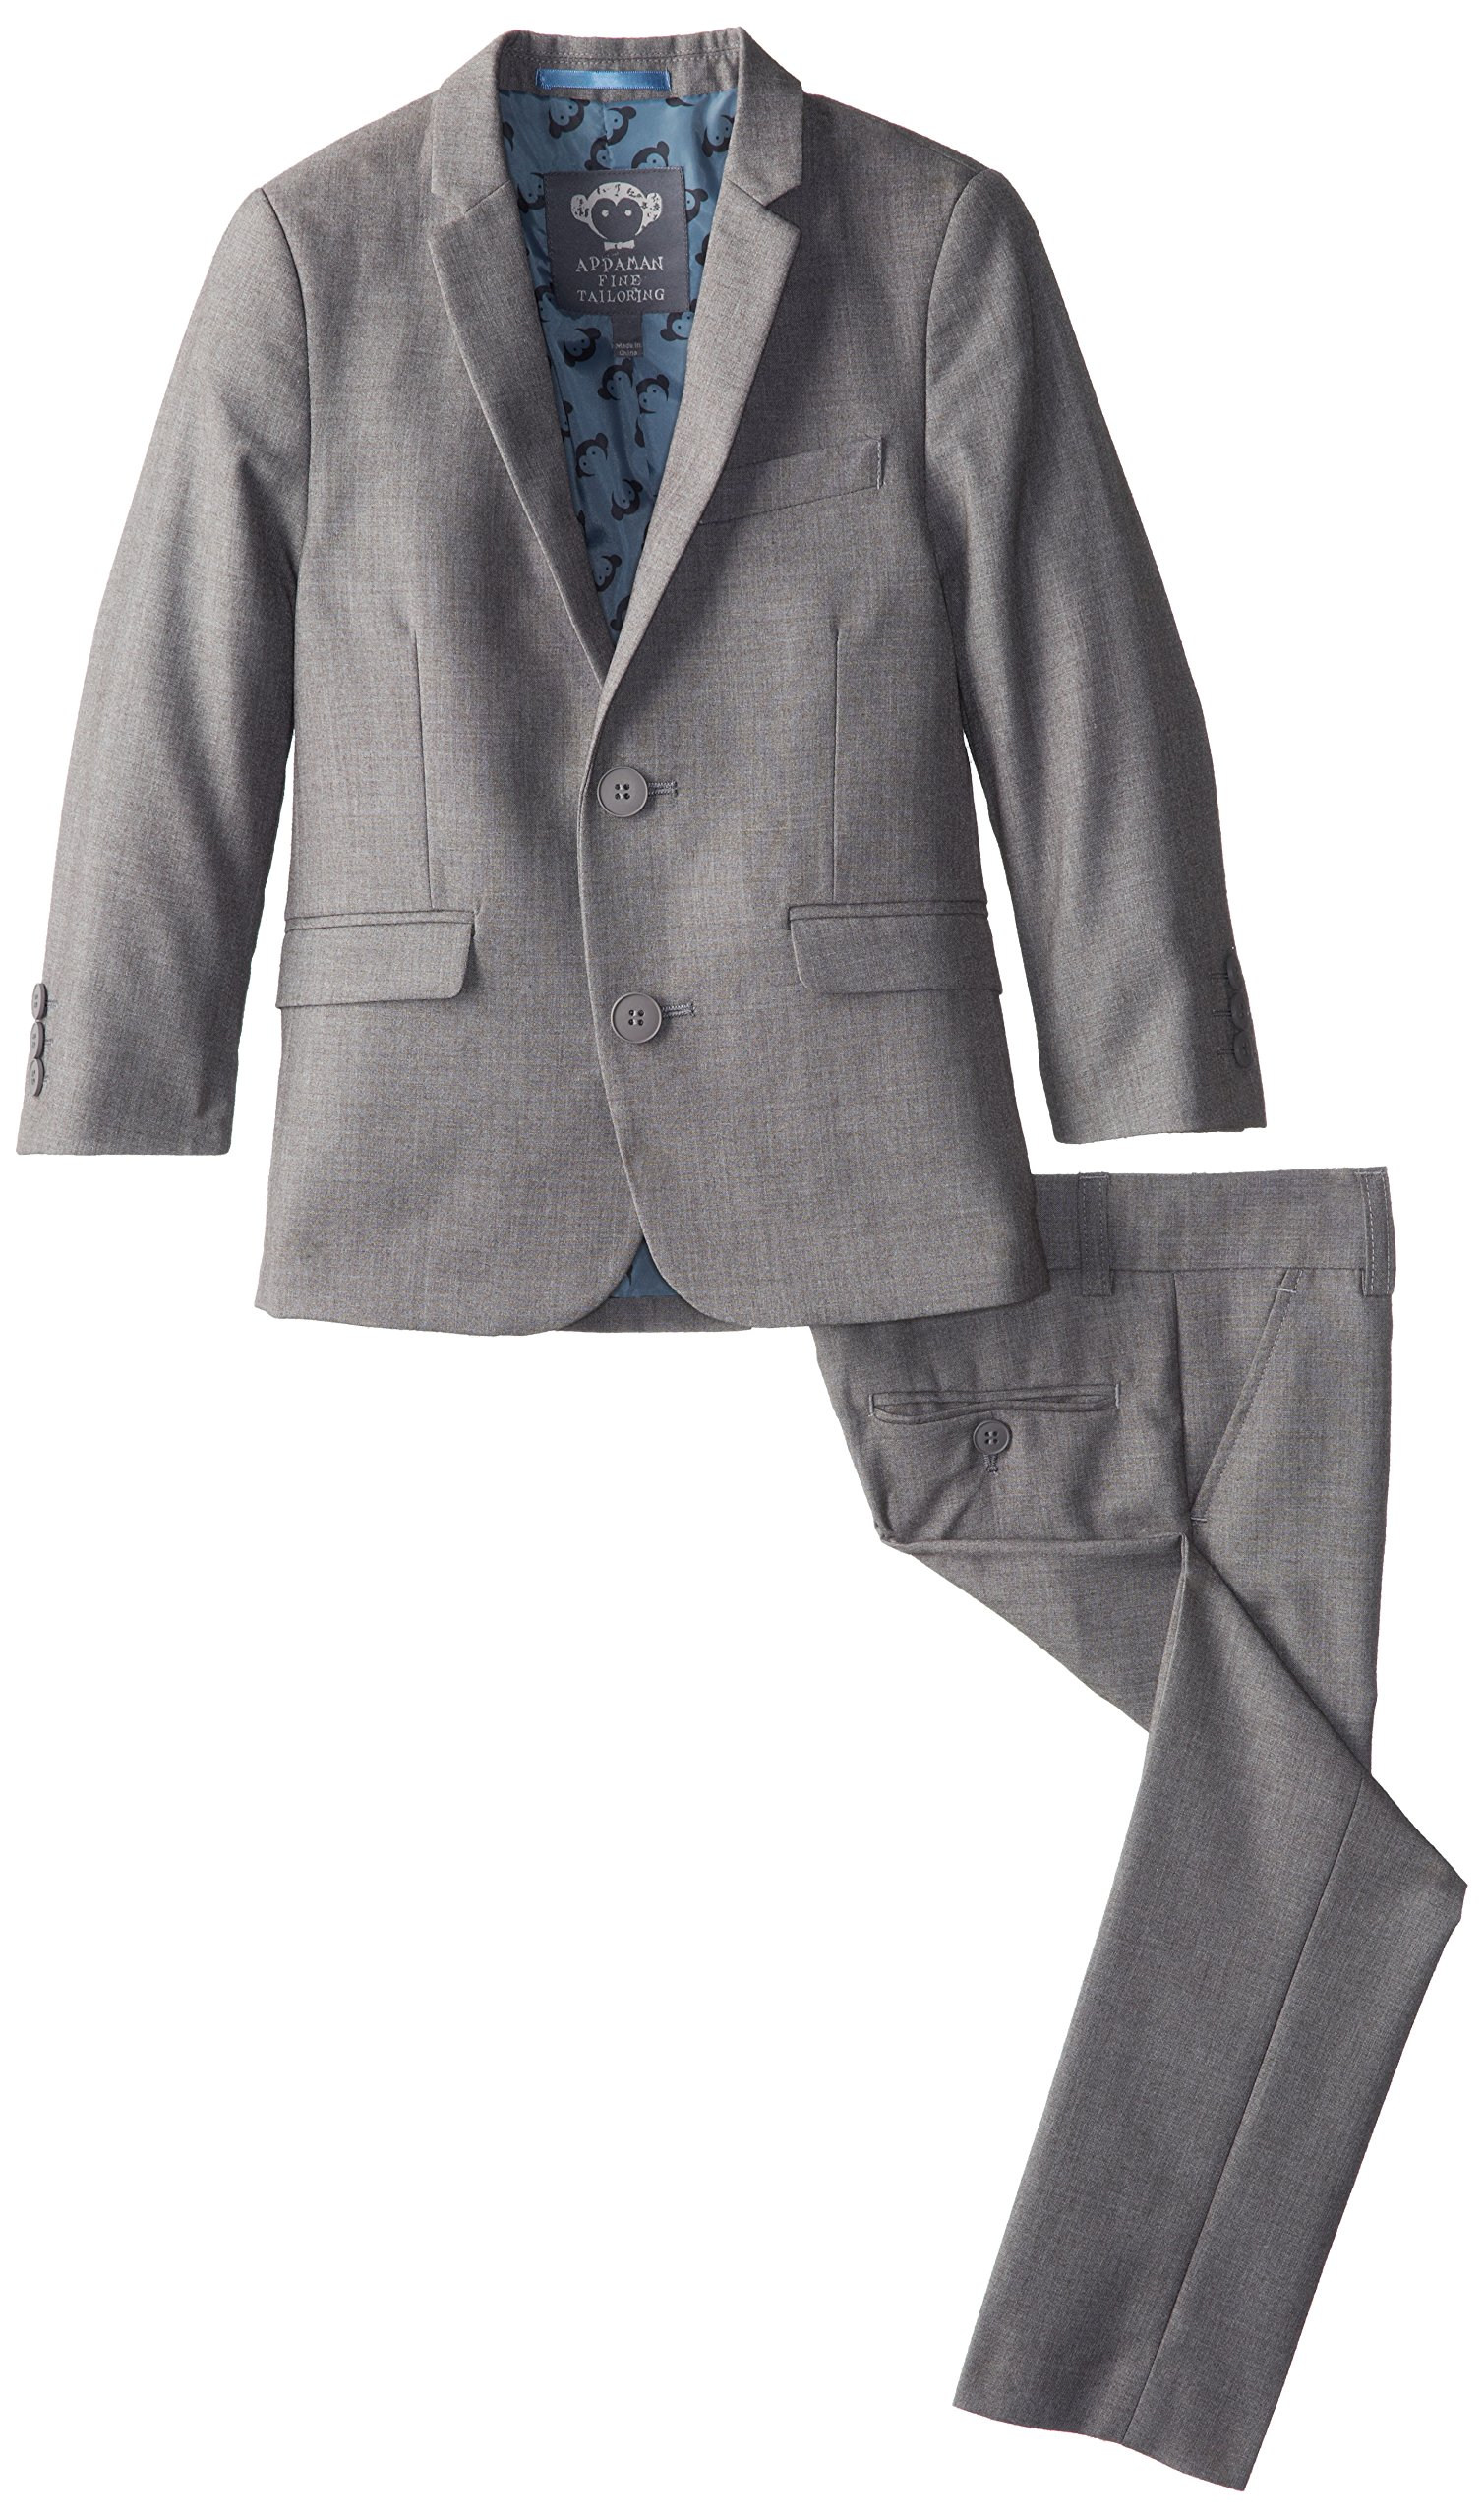 Appaman Little Boys' 2 Piece Classic Mod Suit, Mist, 5 by Appaman